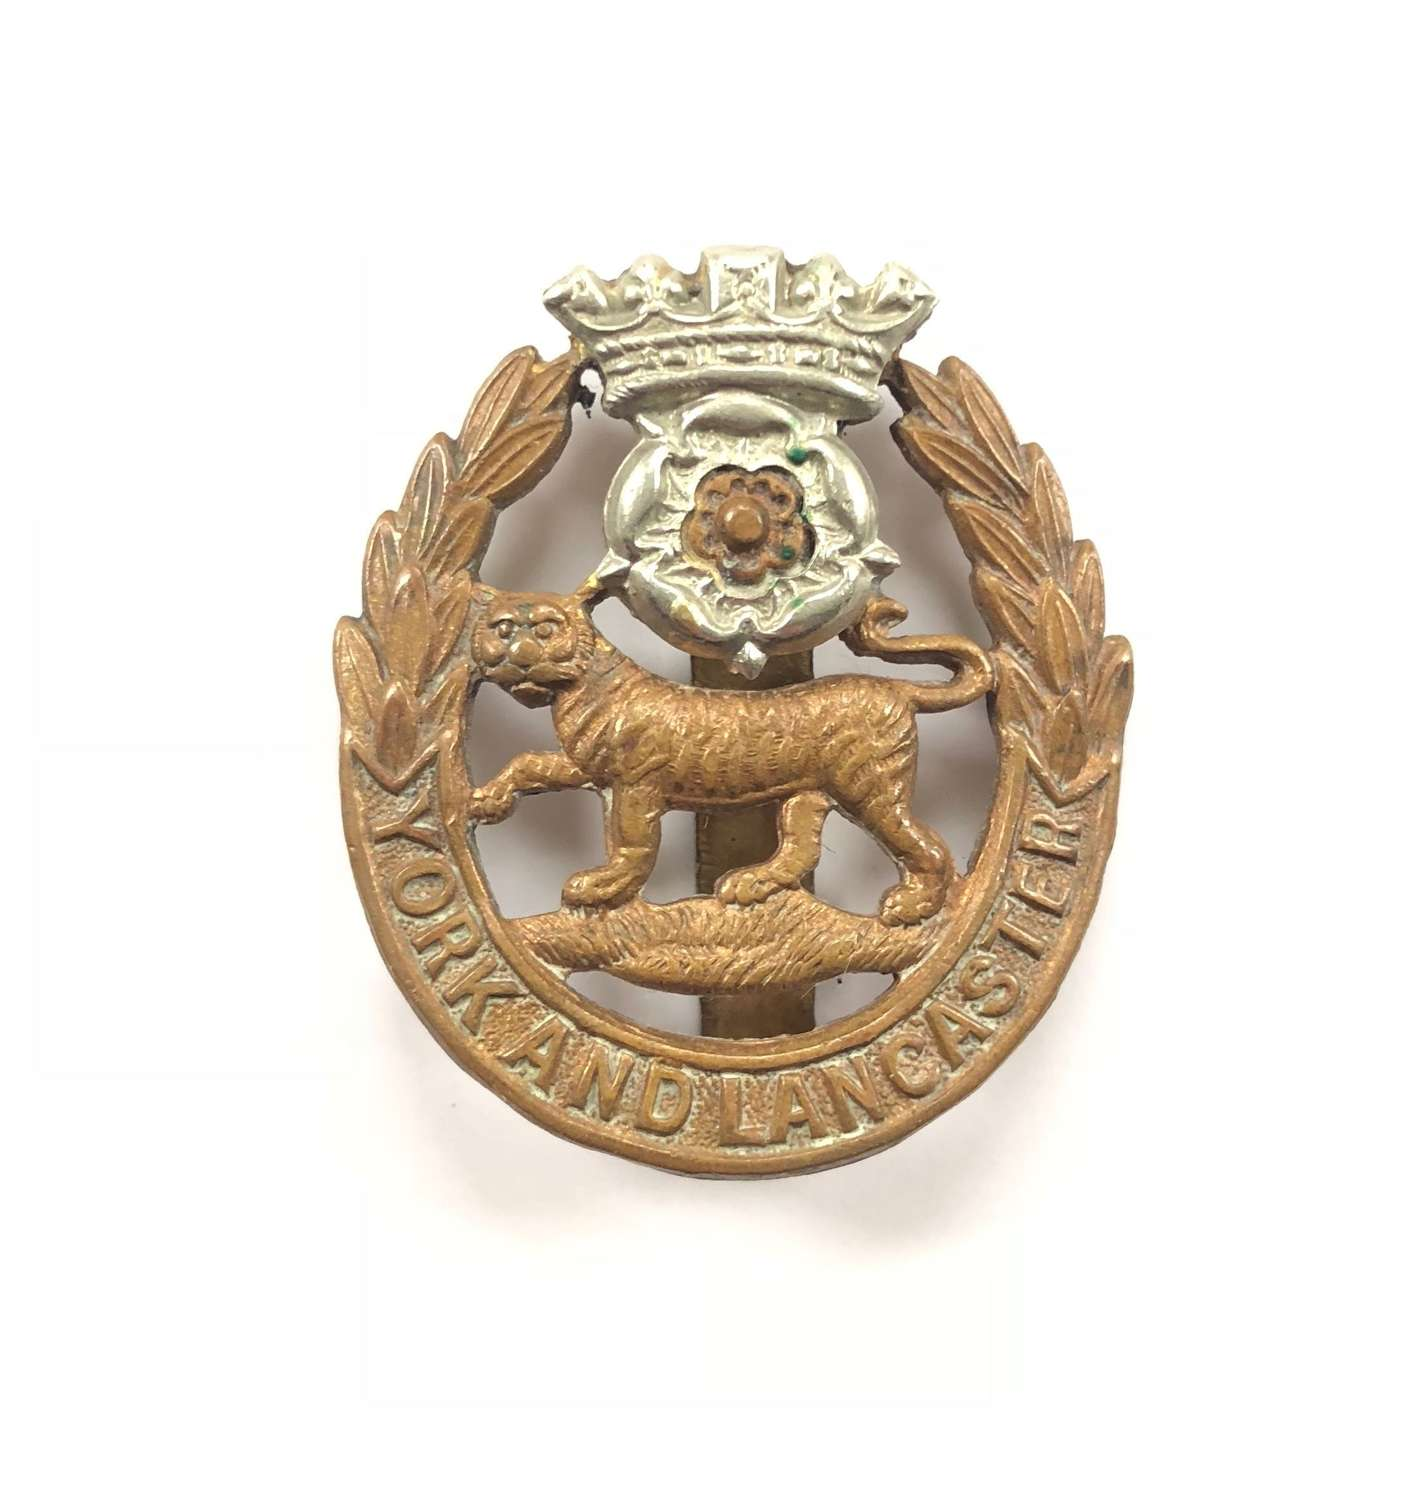 WW1/WW2 Pattern York & Lancs Cap Badge